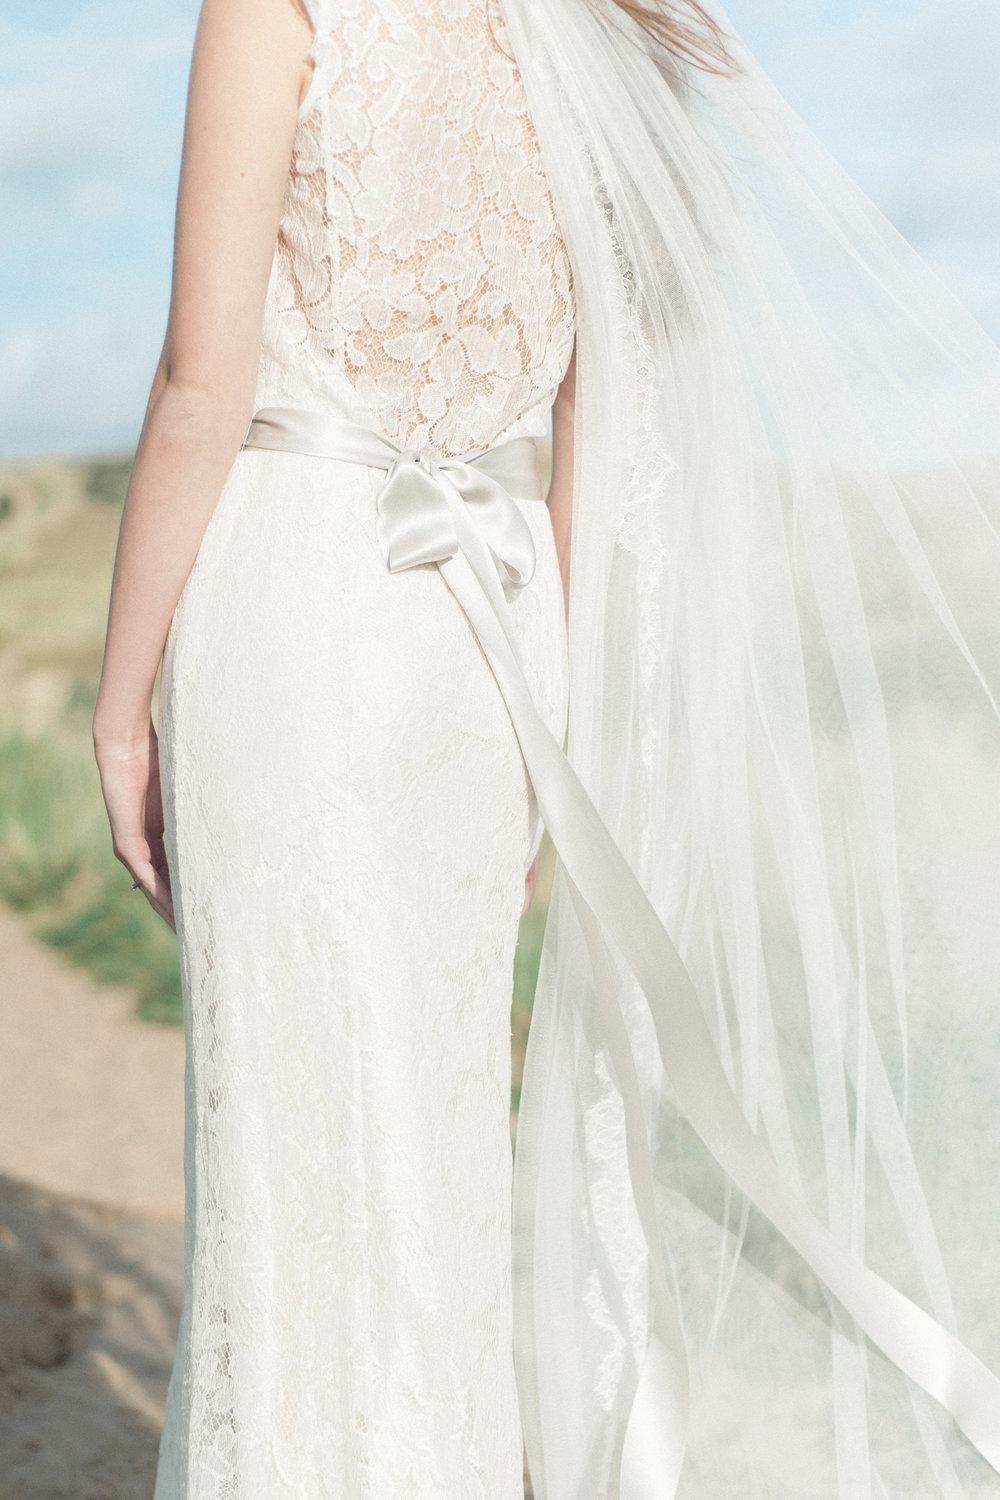 Kate-Beaumont-Wedding-Dresses-Formby-Beach-Emma-Pilkington-7.jpg